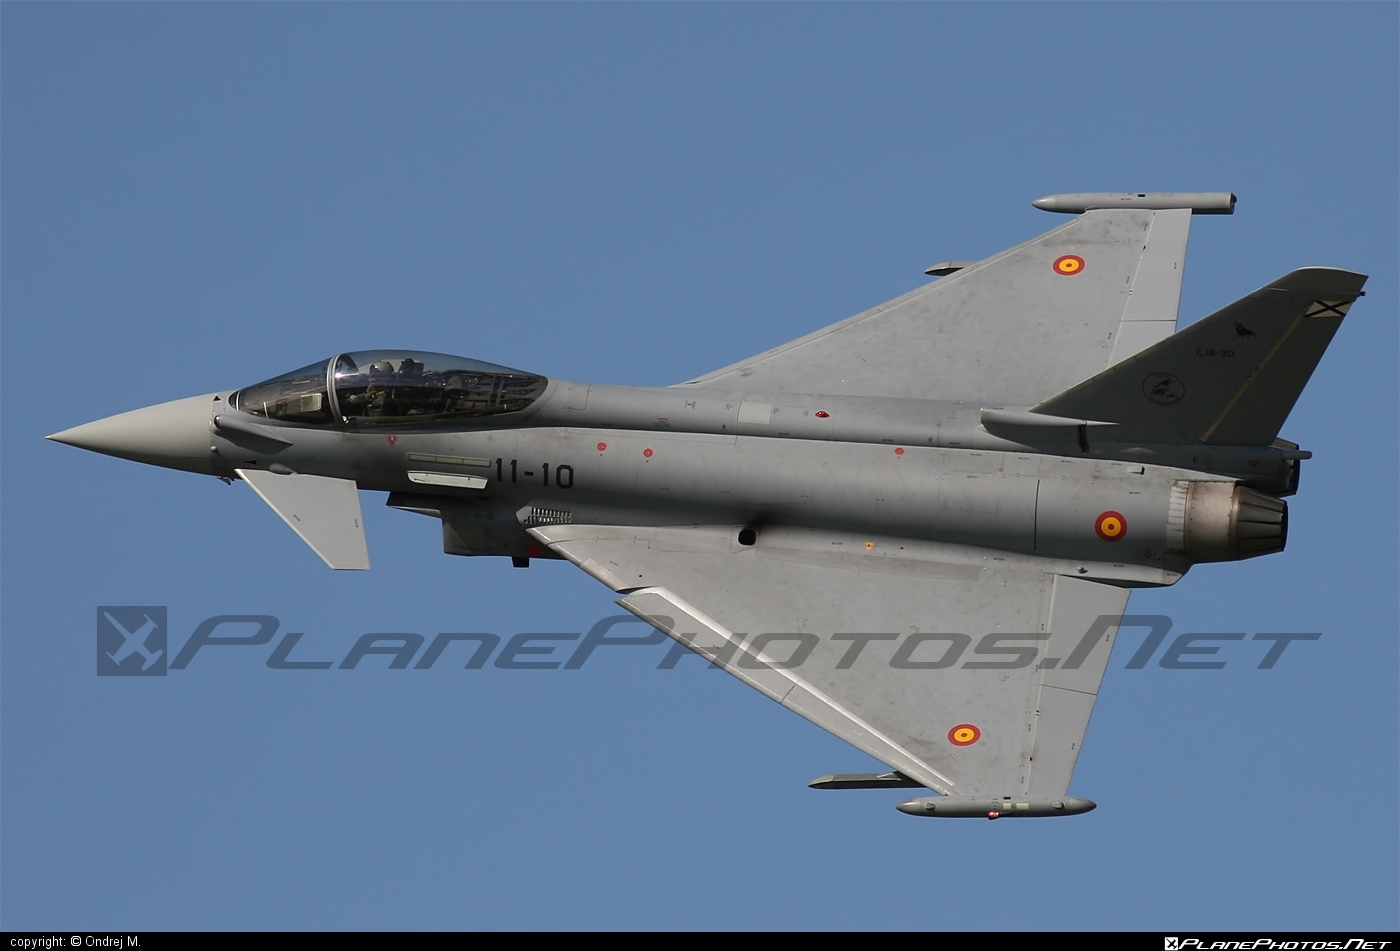 Ejército del Aire (Spanish Air Force) Eurofighter Typhoon S - C.16-30